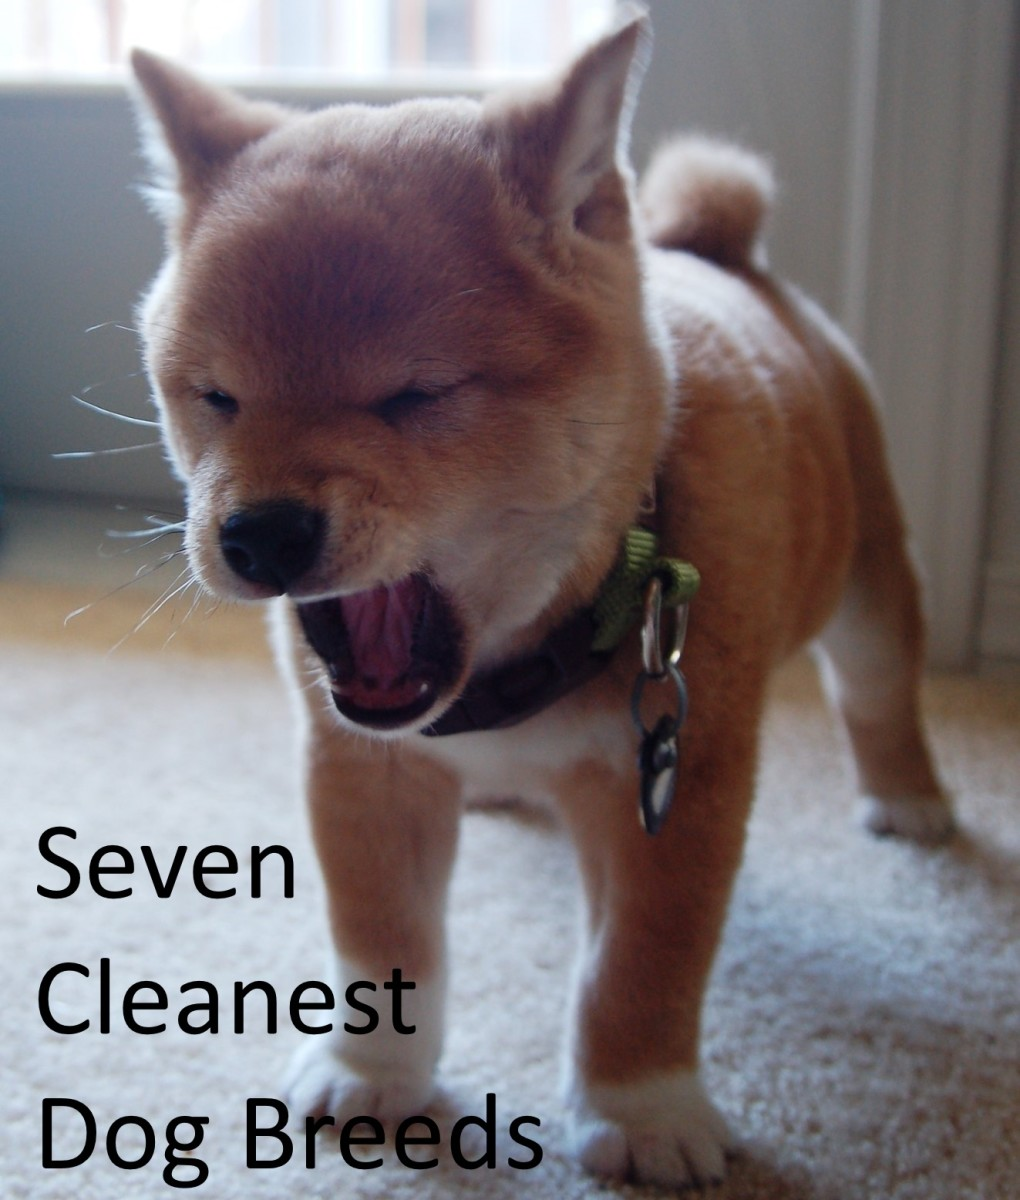 Shiba Inu are easy to housebreak, as clean as many cats, and do not bark much.